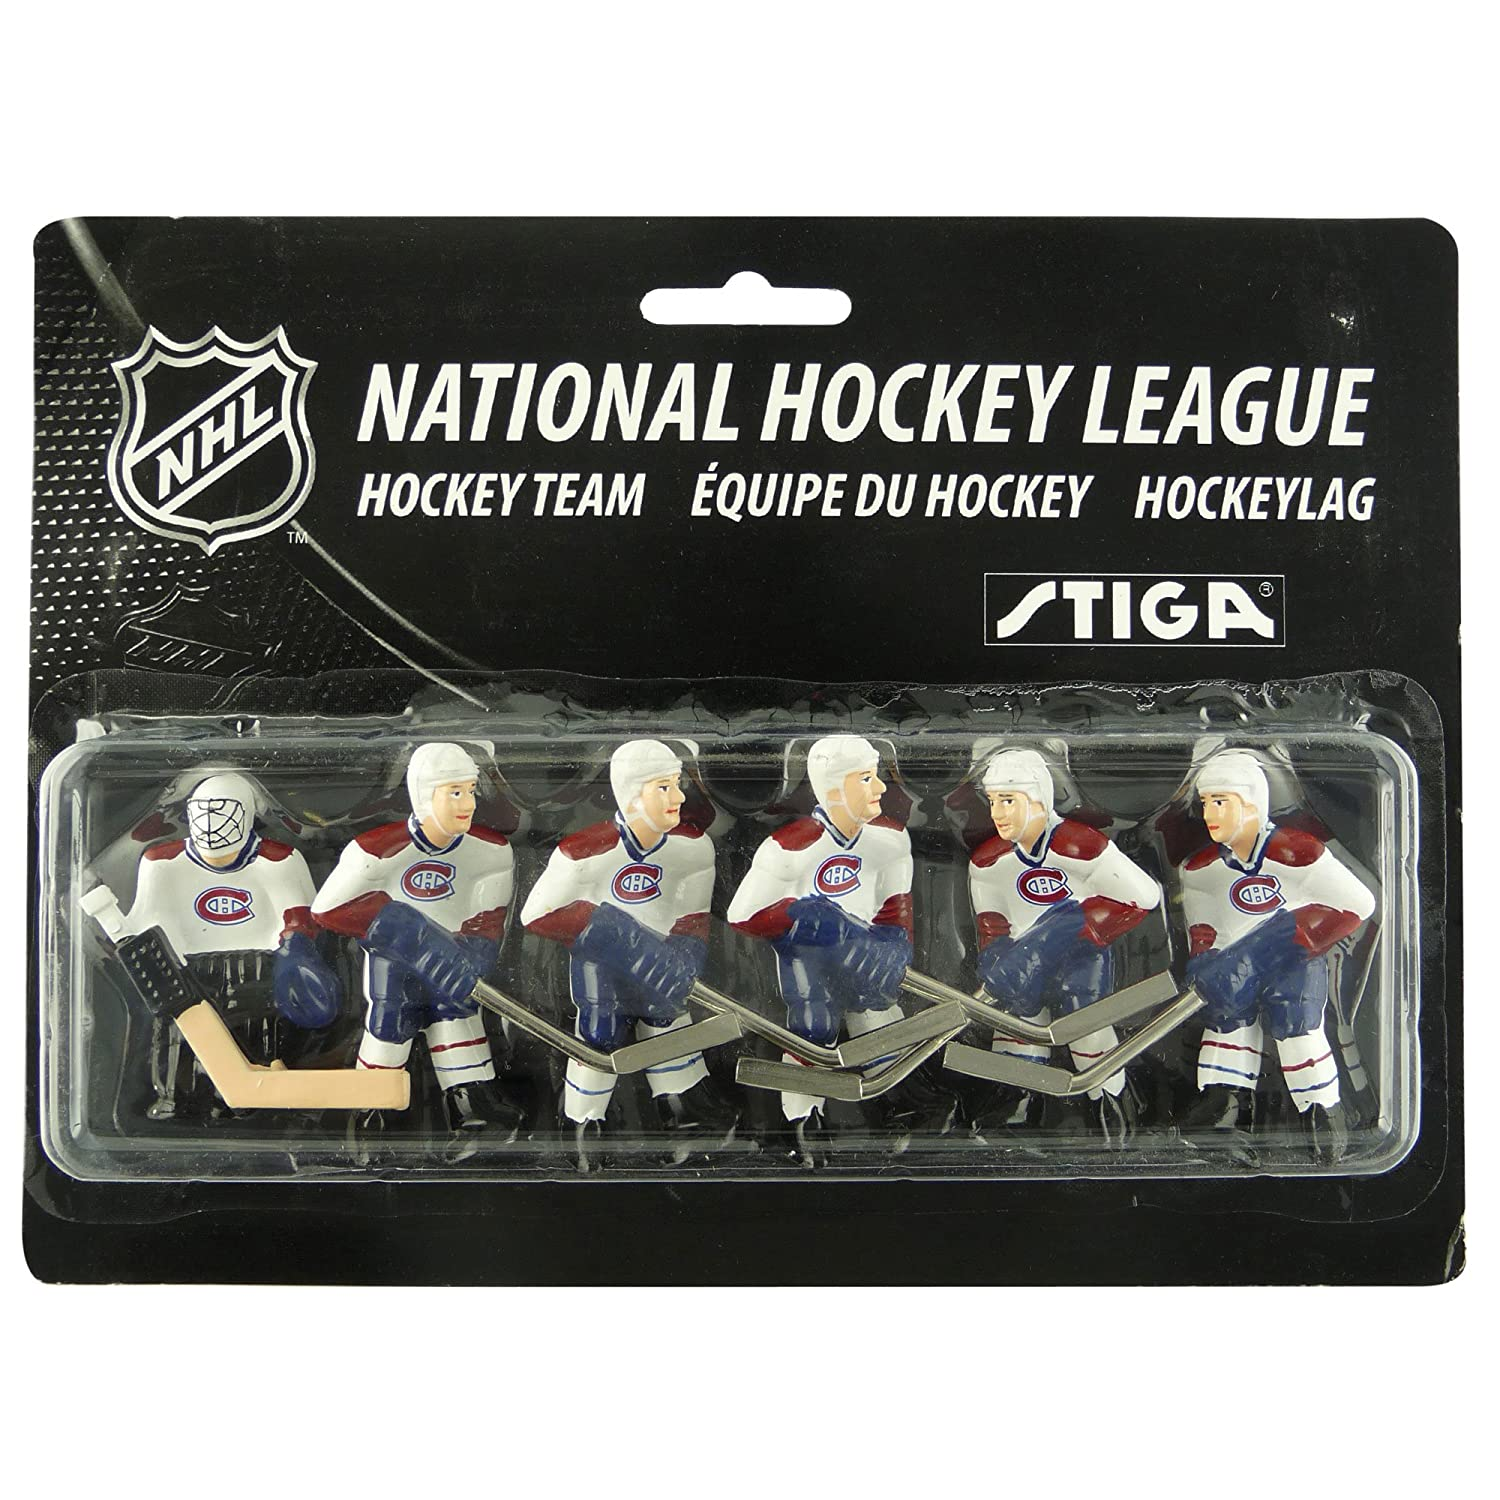 NHL Montreal Canadiens Table Top Hockey Game Players Team Pack Stiga 7111-9090-16